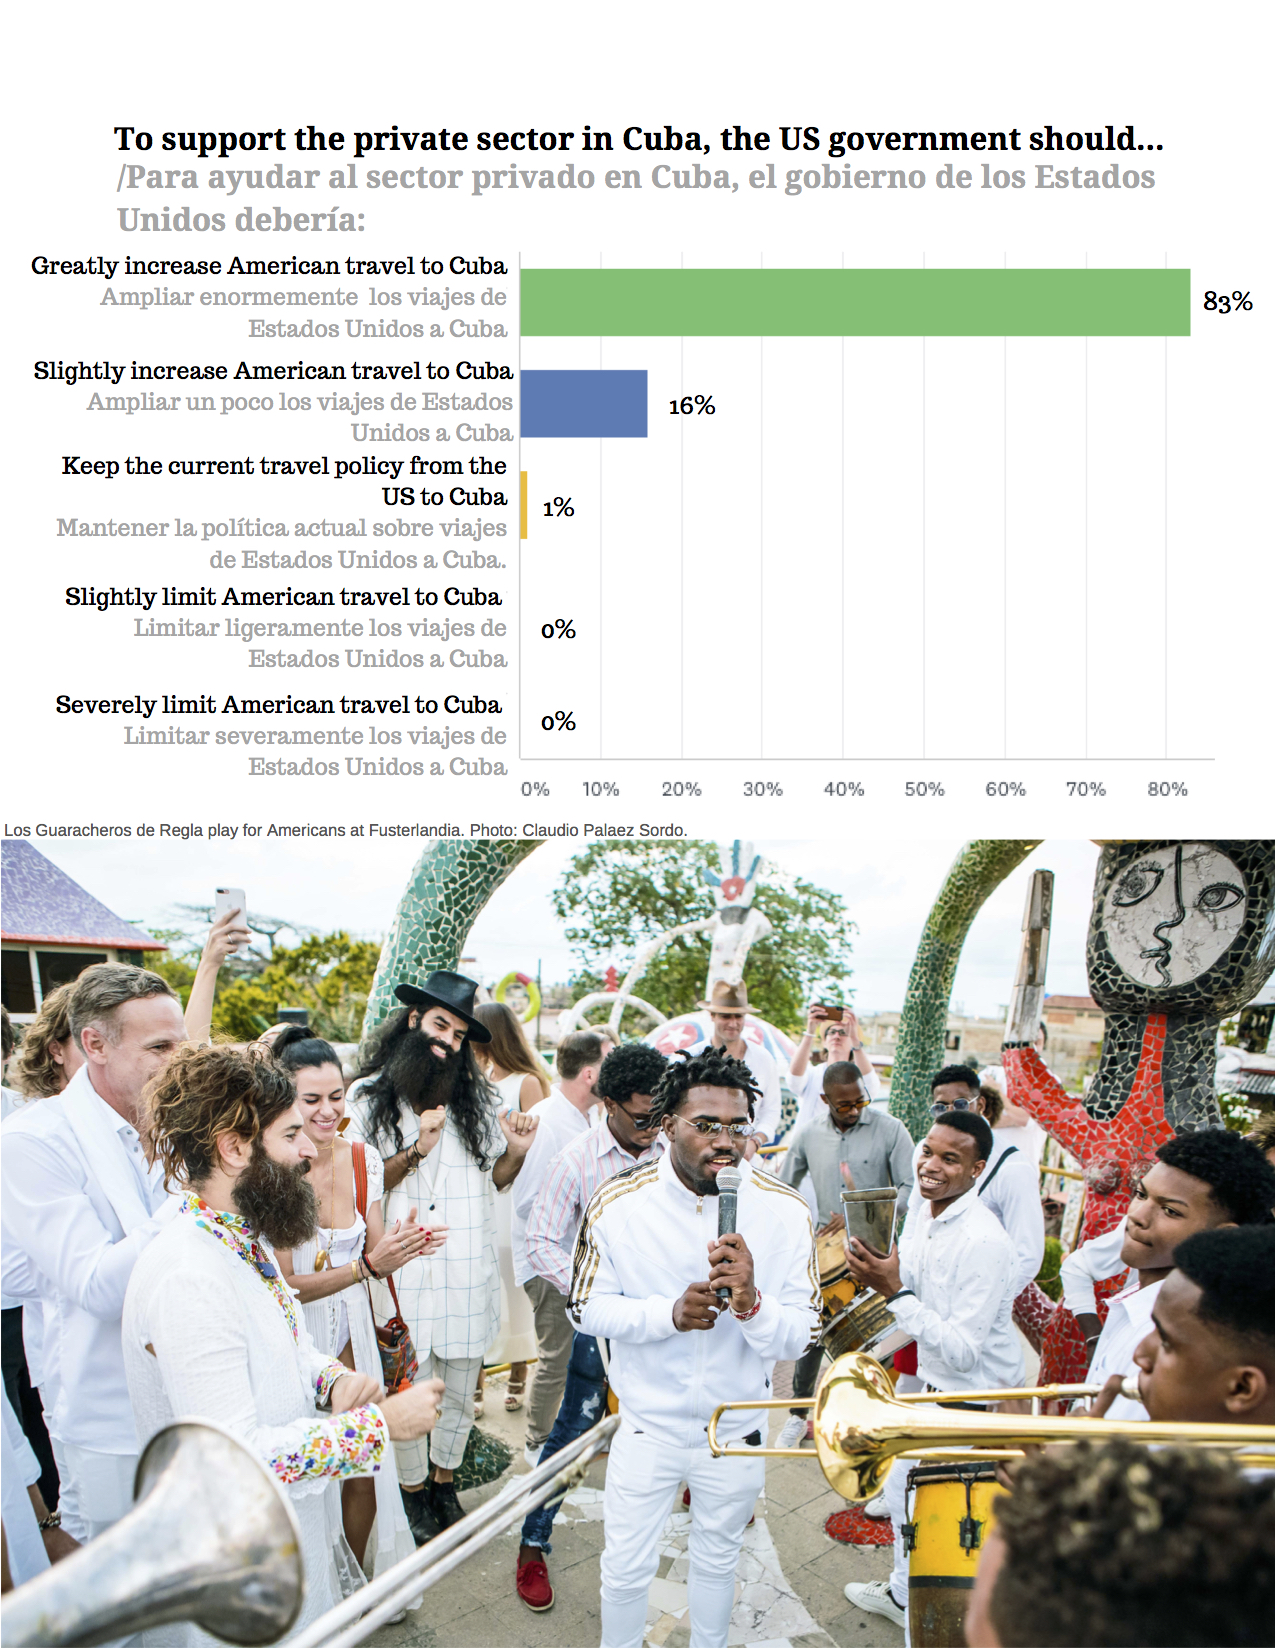 NEXXXXTMay 2019 Survey Finds Cuban Private Sector Relies Heavily on American Visitors and Cubans Are _Very Worried_ About Impending Restrictions on Travel (1).jpg